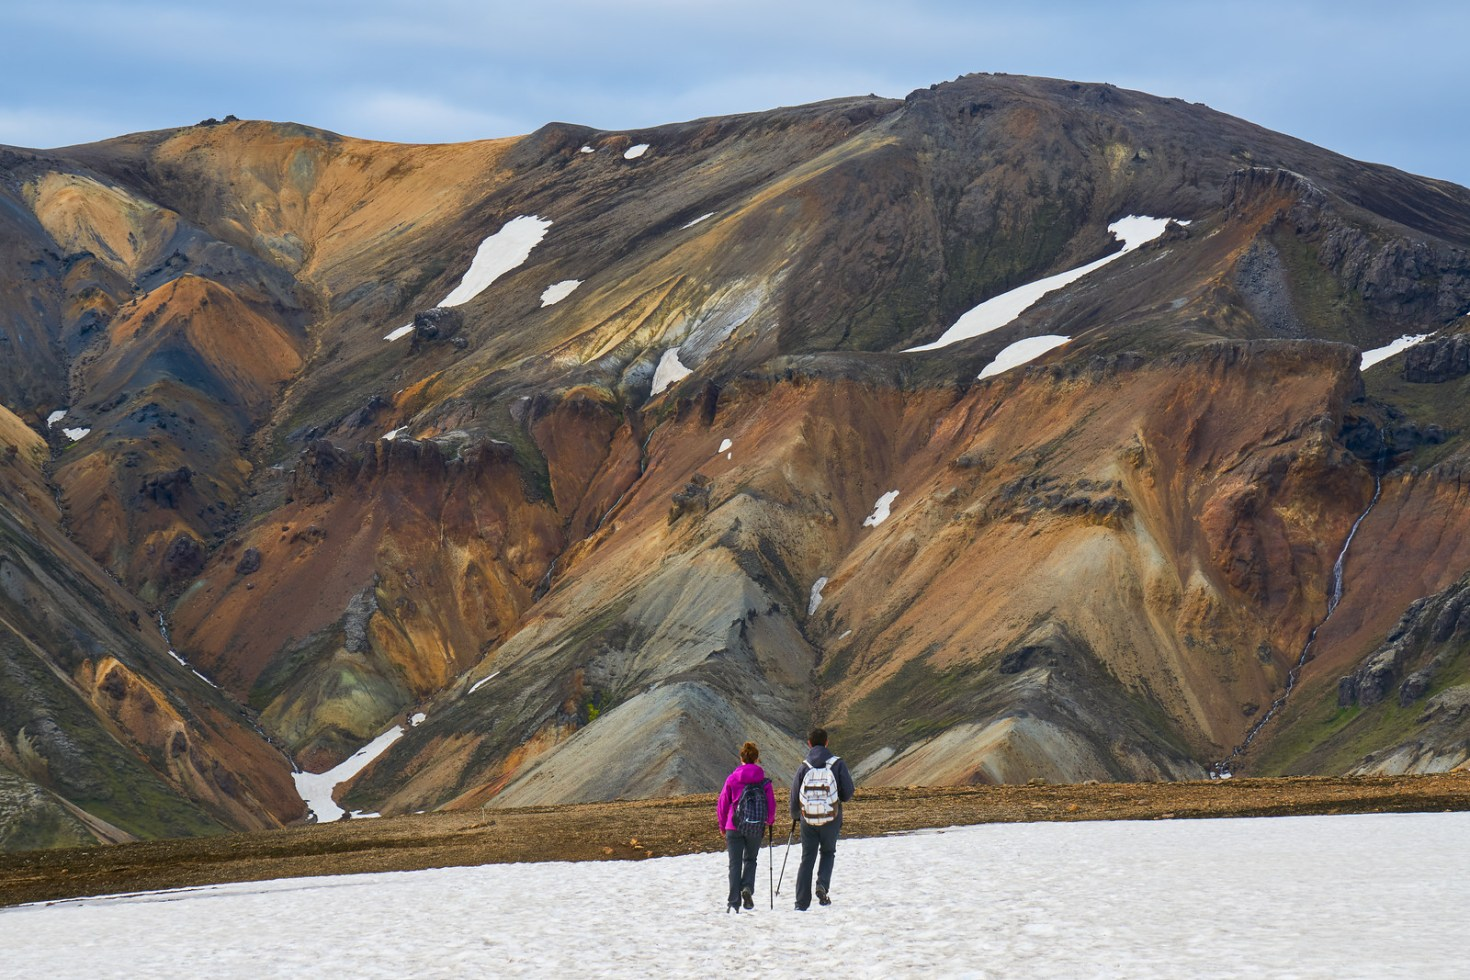 Hikers in a colorful landscape